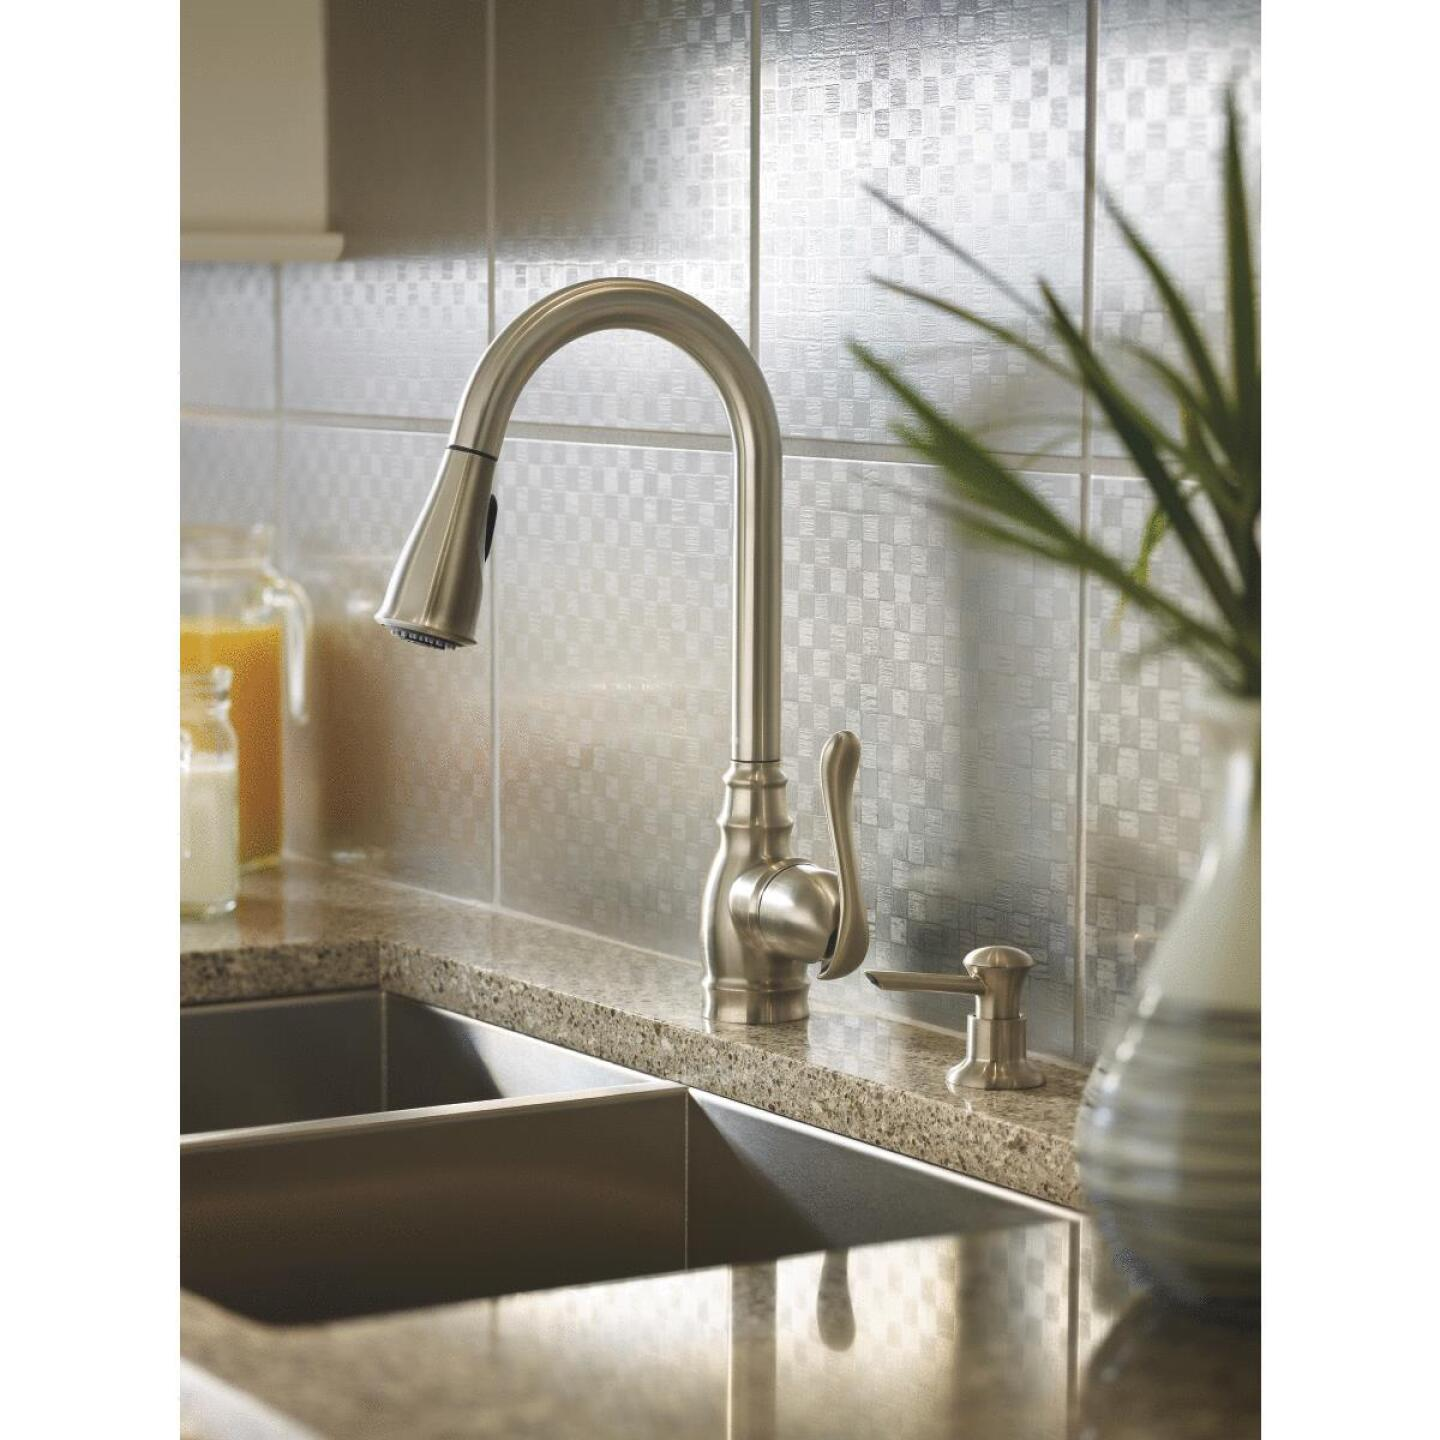 Moen Anabelle Single Handle Lever Pull-Down Kitchen Faucet with Soap Dispenser, Stainless Image 3